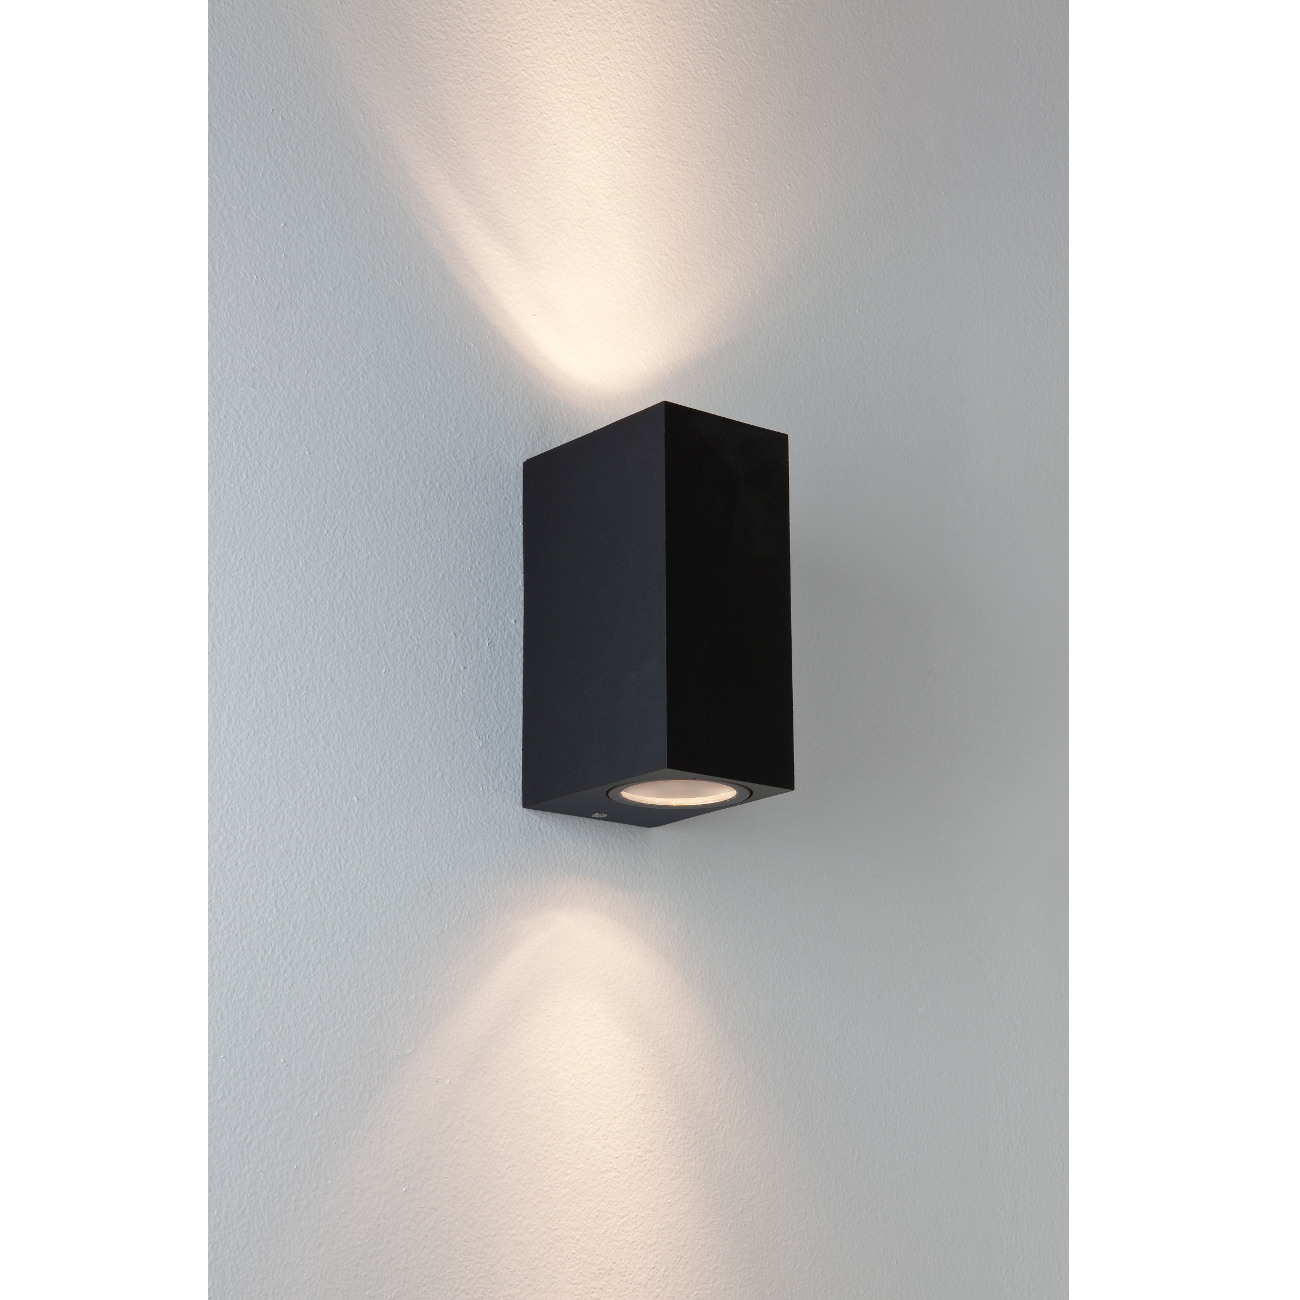 geradlinig designte wandleuchte up downlight f r au en chios 150 led wandleuchten. Black Bedroom Furniture Sets. Home Design Ideas